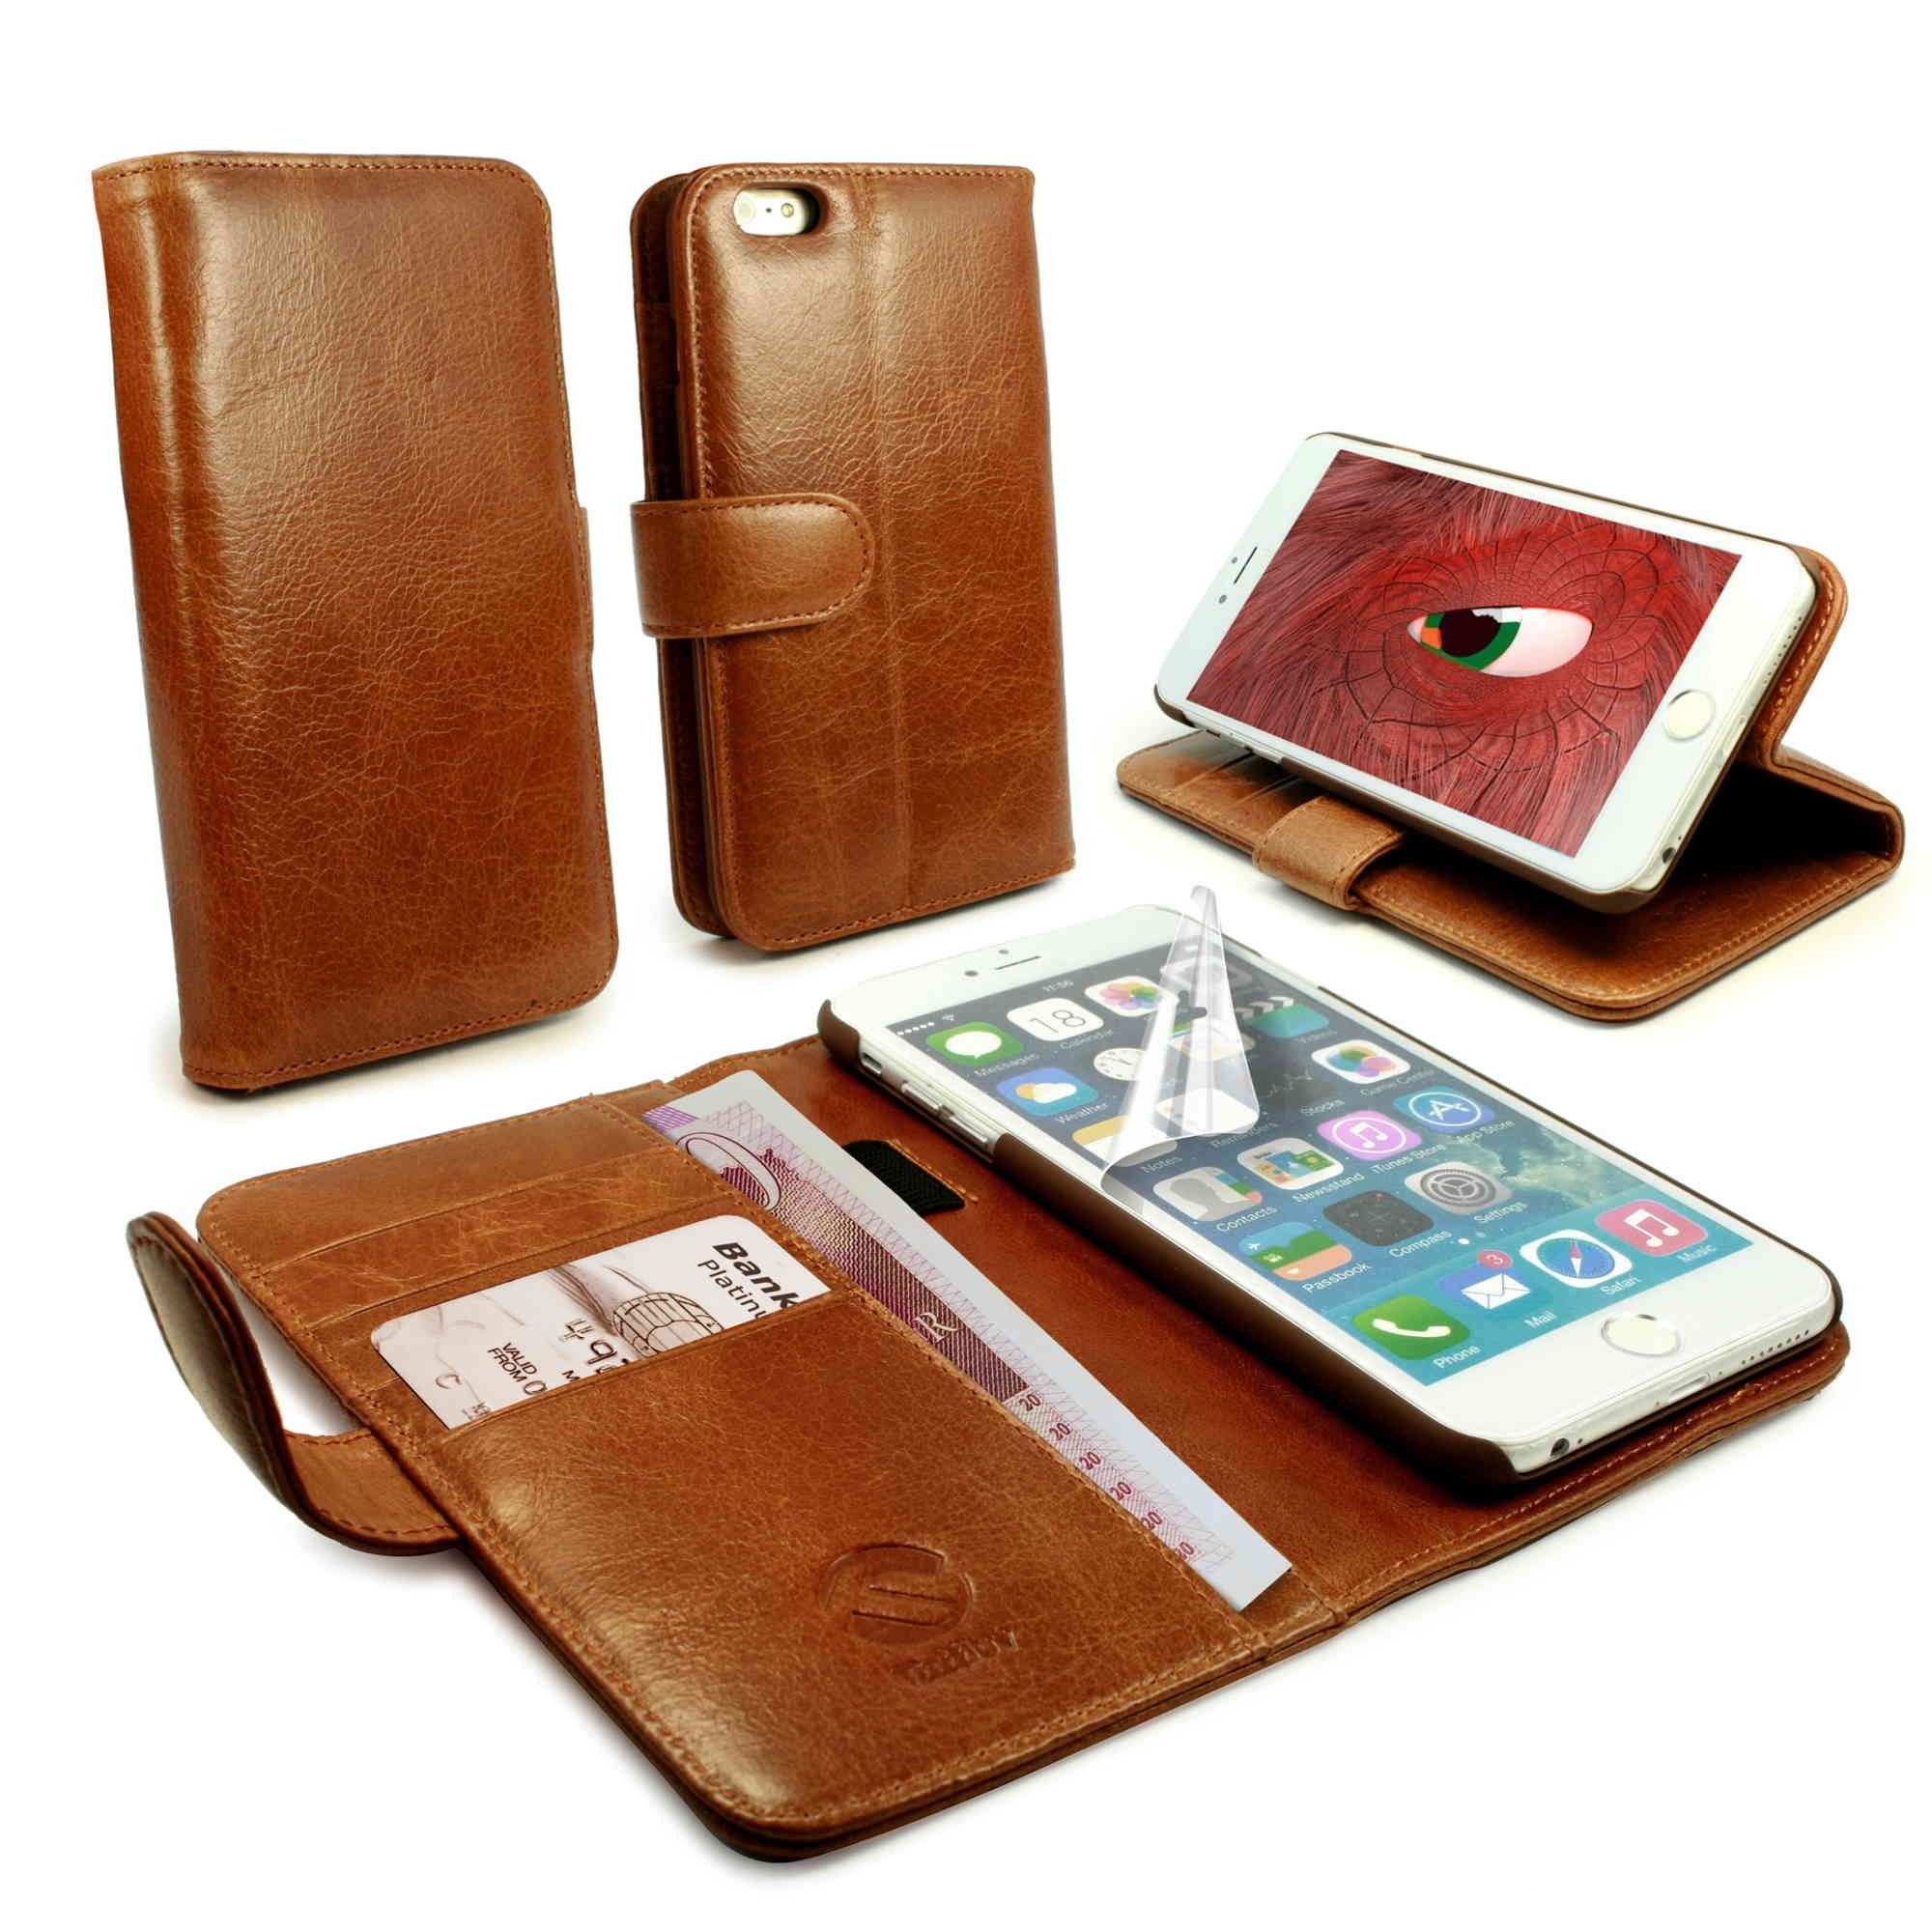 Apple iPhone 6 Plus leather phone case in brown